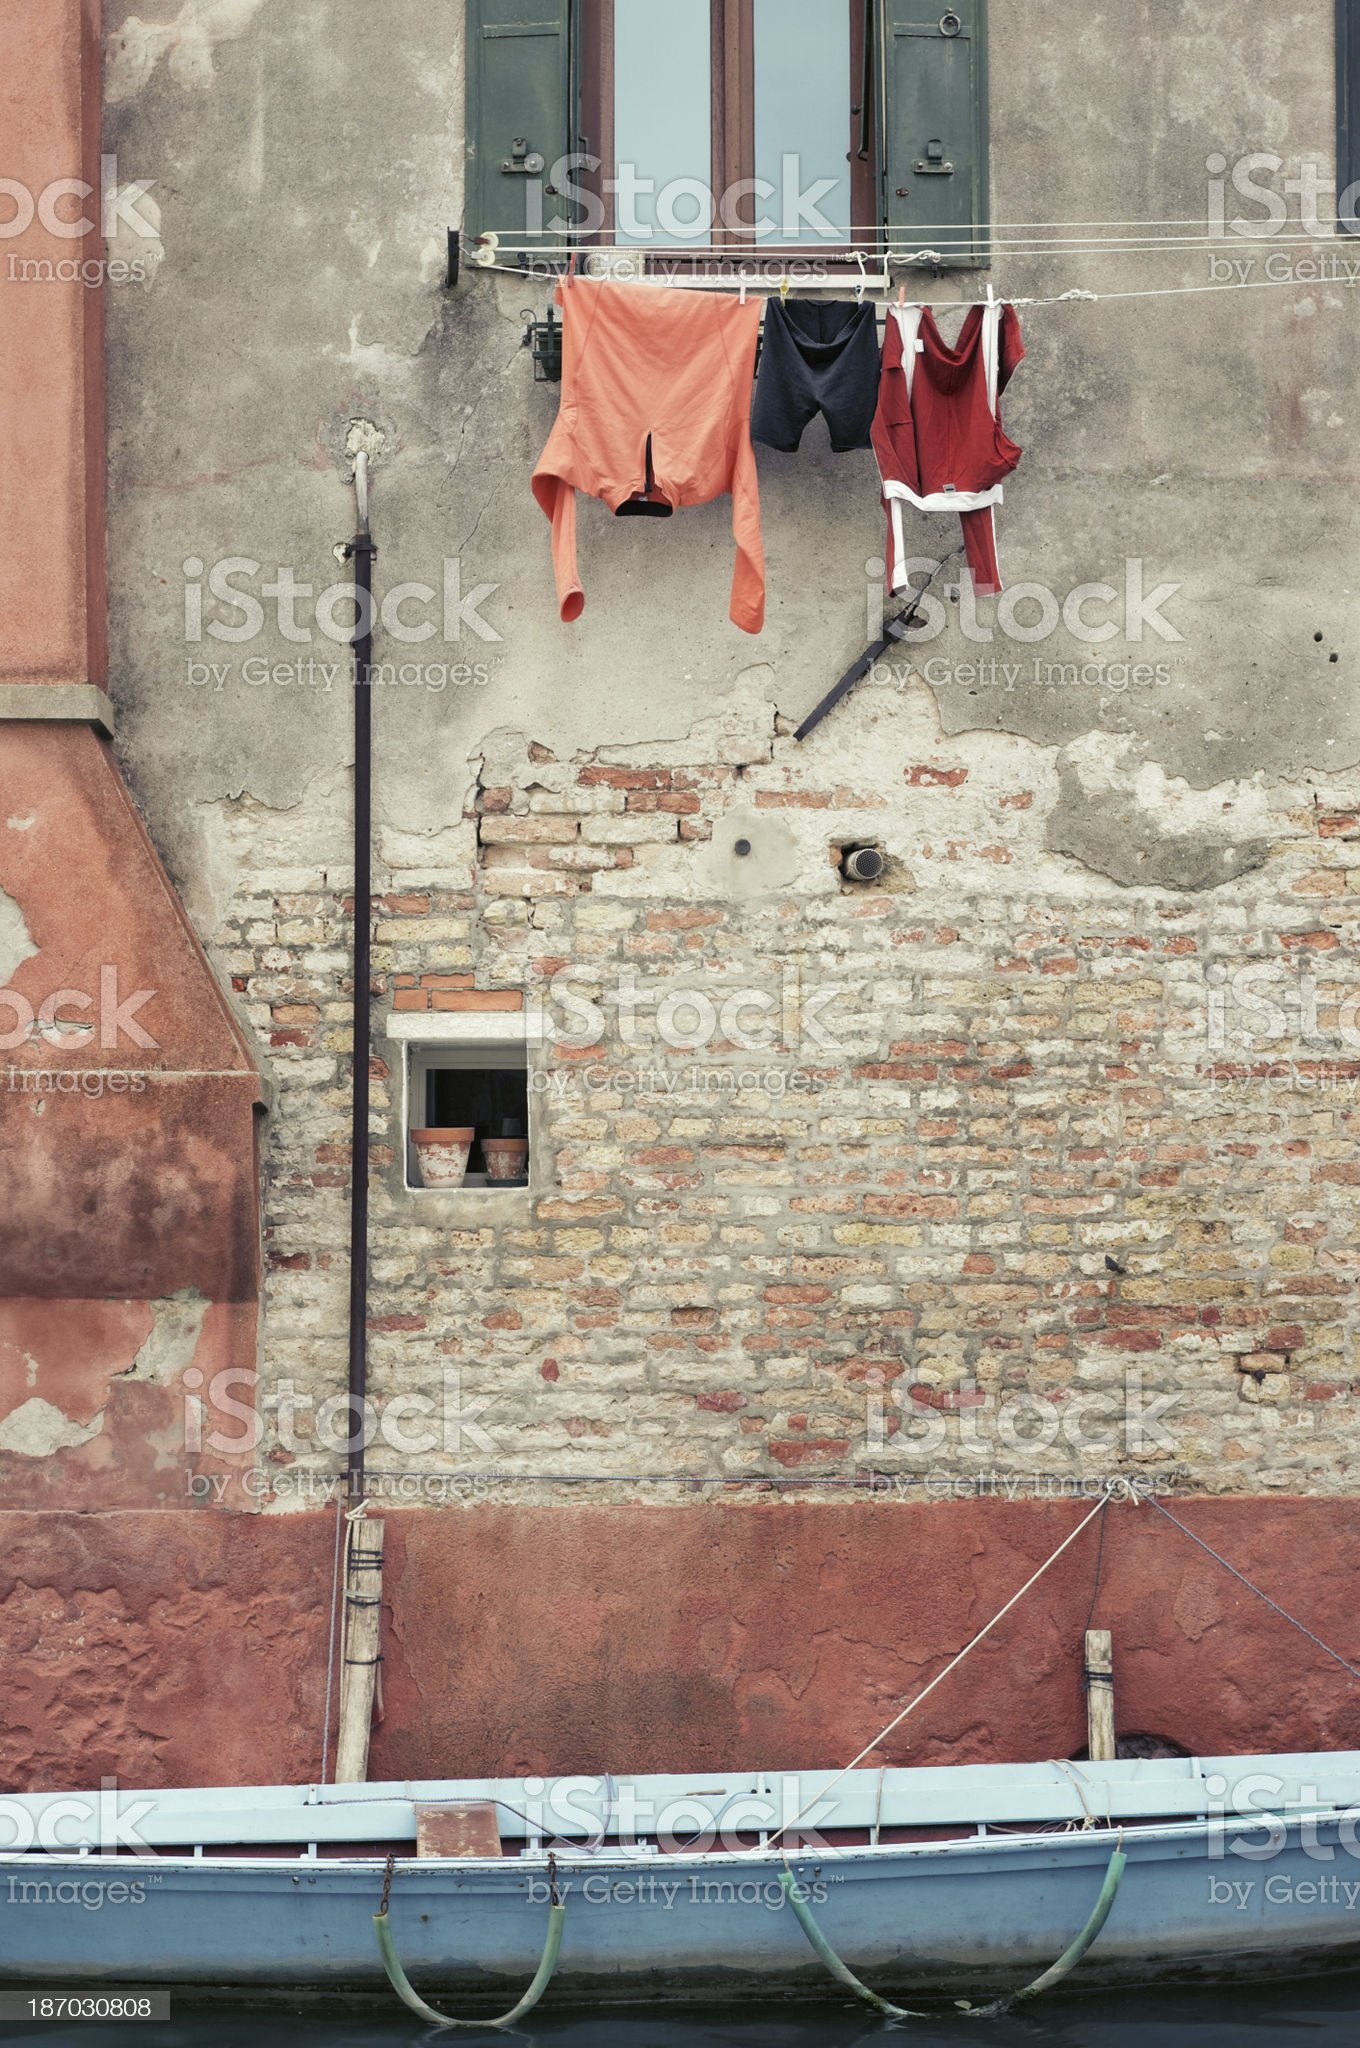 Domestic Clothes line in Venice, Italy royalty-free stock photo